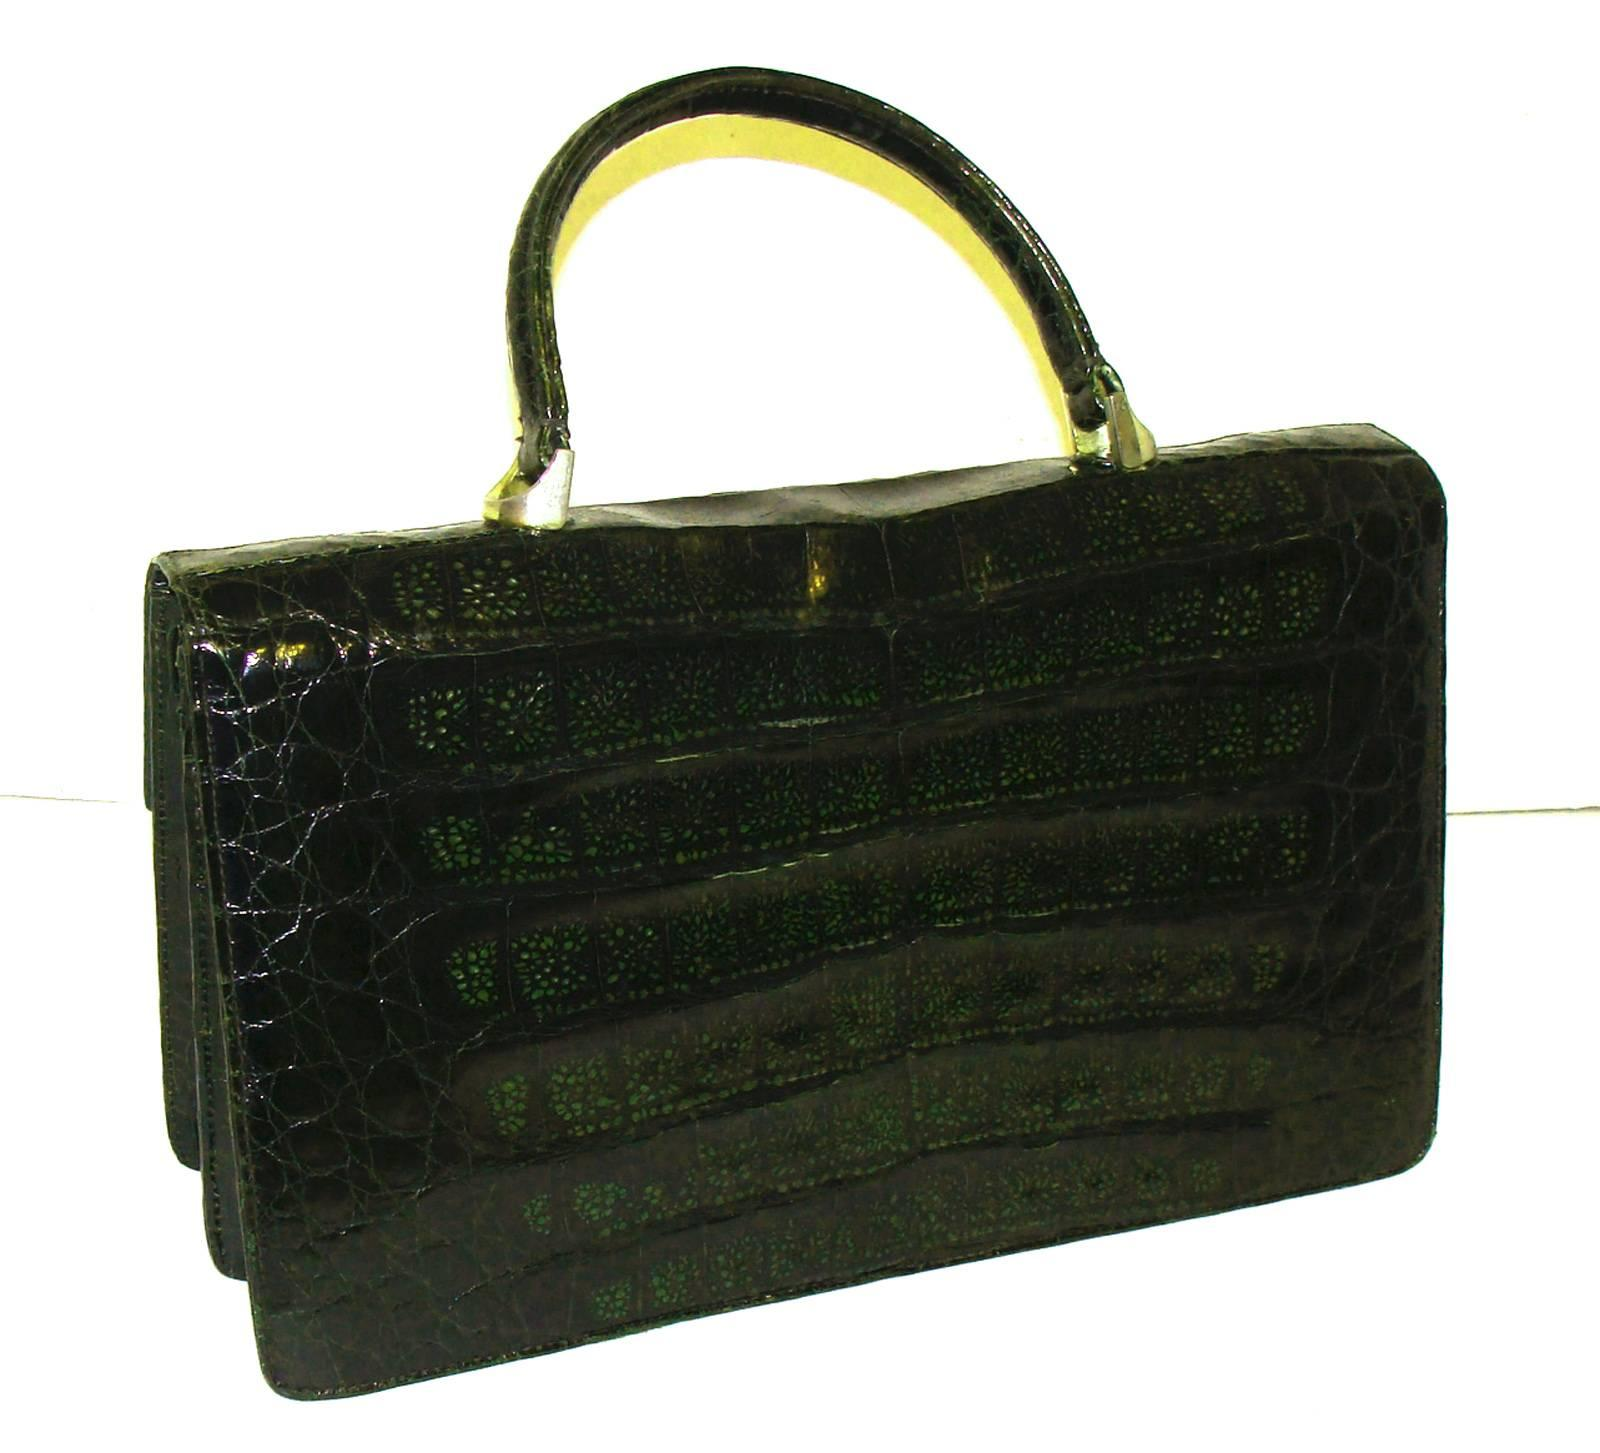 1stdibs Oversized Green Alligator Bag A72GR3S